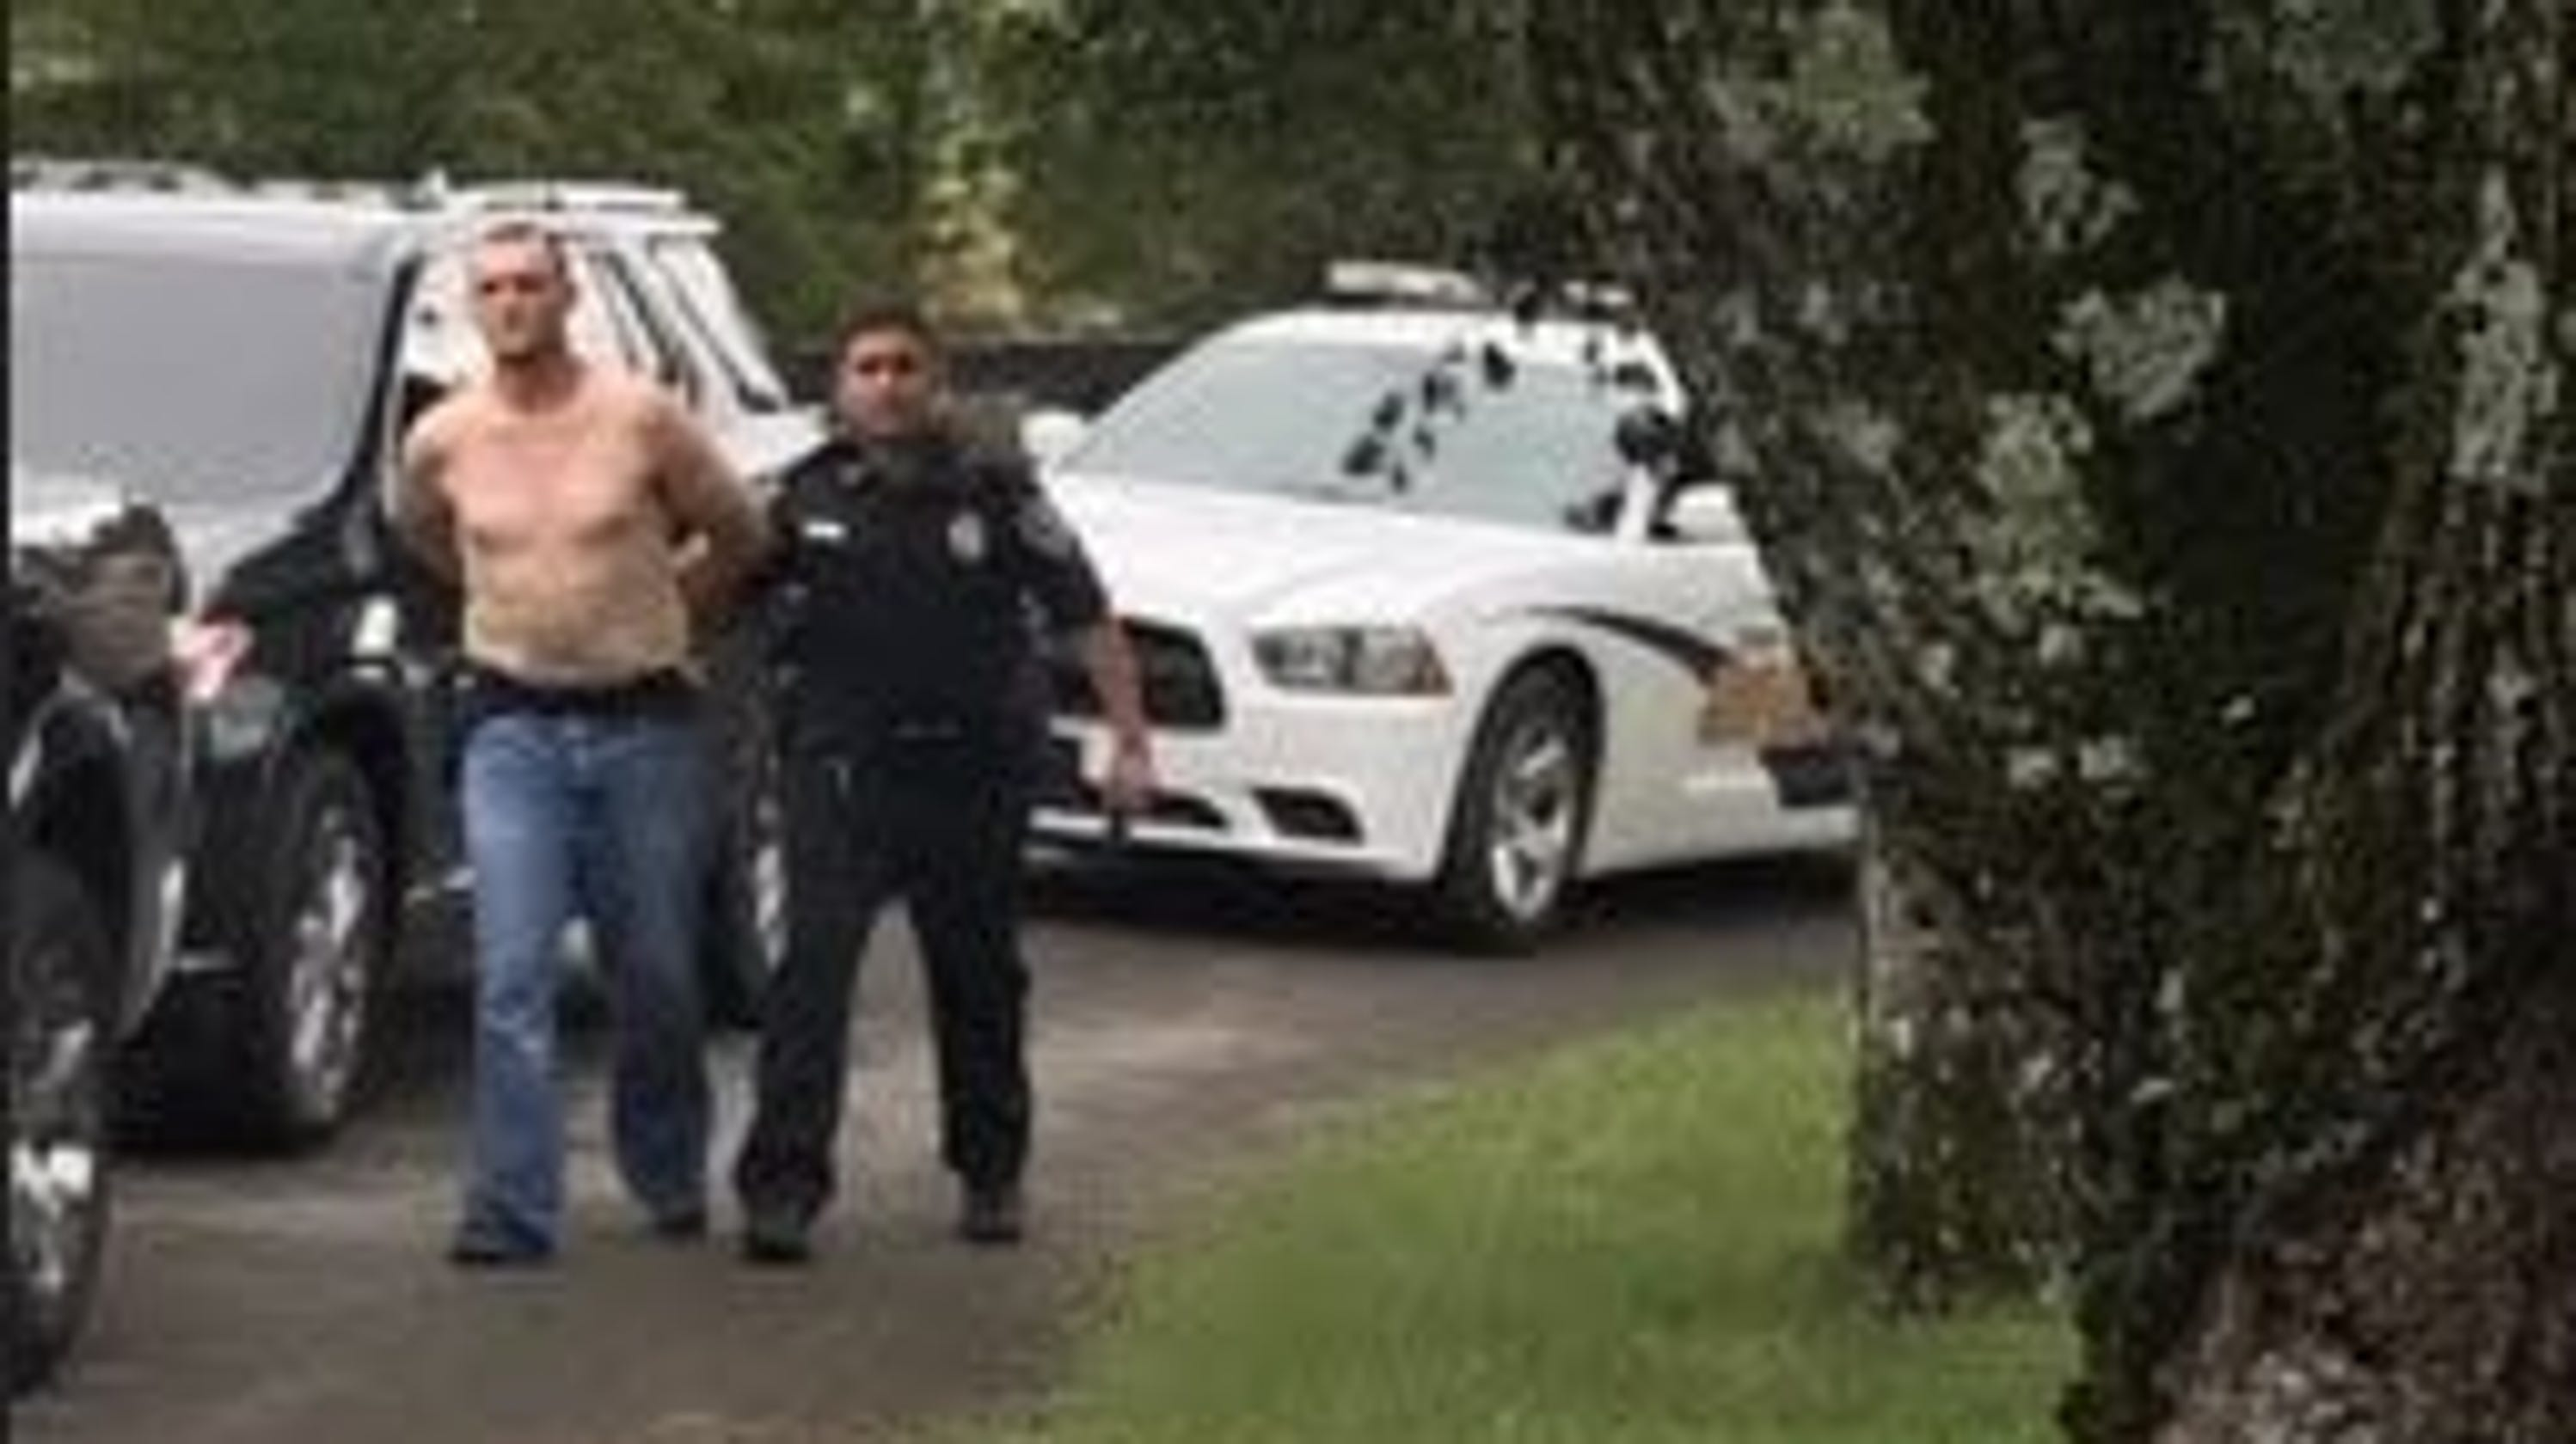 KCSO: Felon to be extradited following East Knox County pursuit